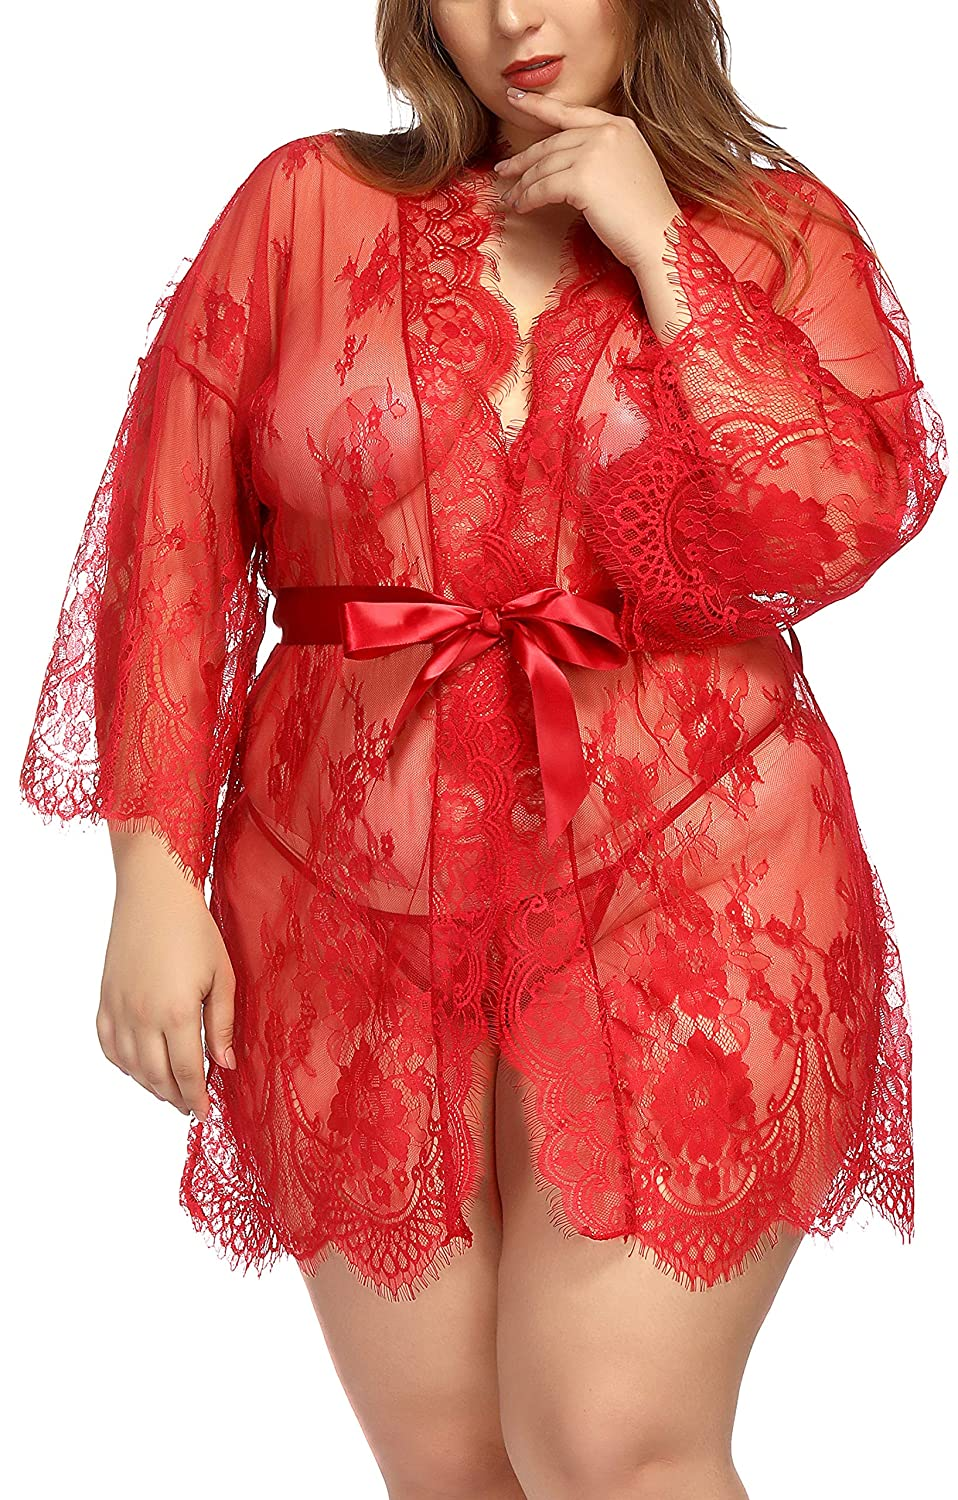 6a8b11ef5 Top 10 wholesale Lingerie Lace Plus Size - Chinabrands.com